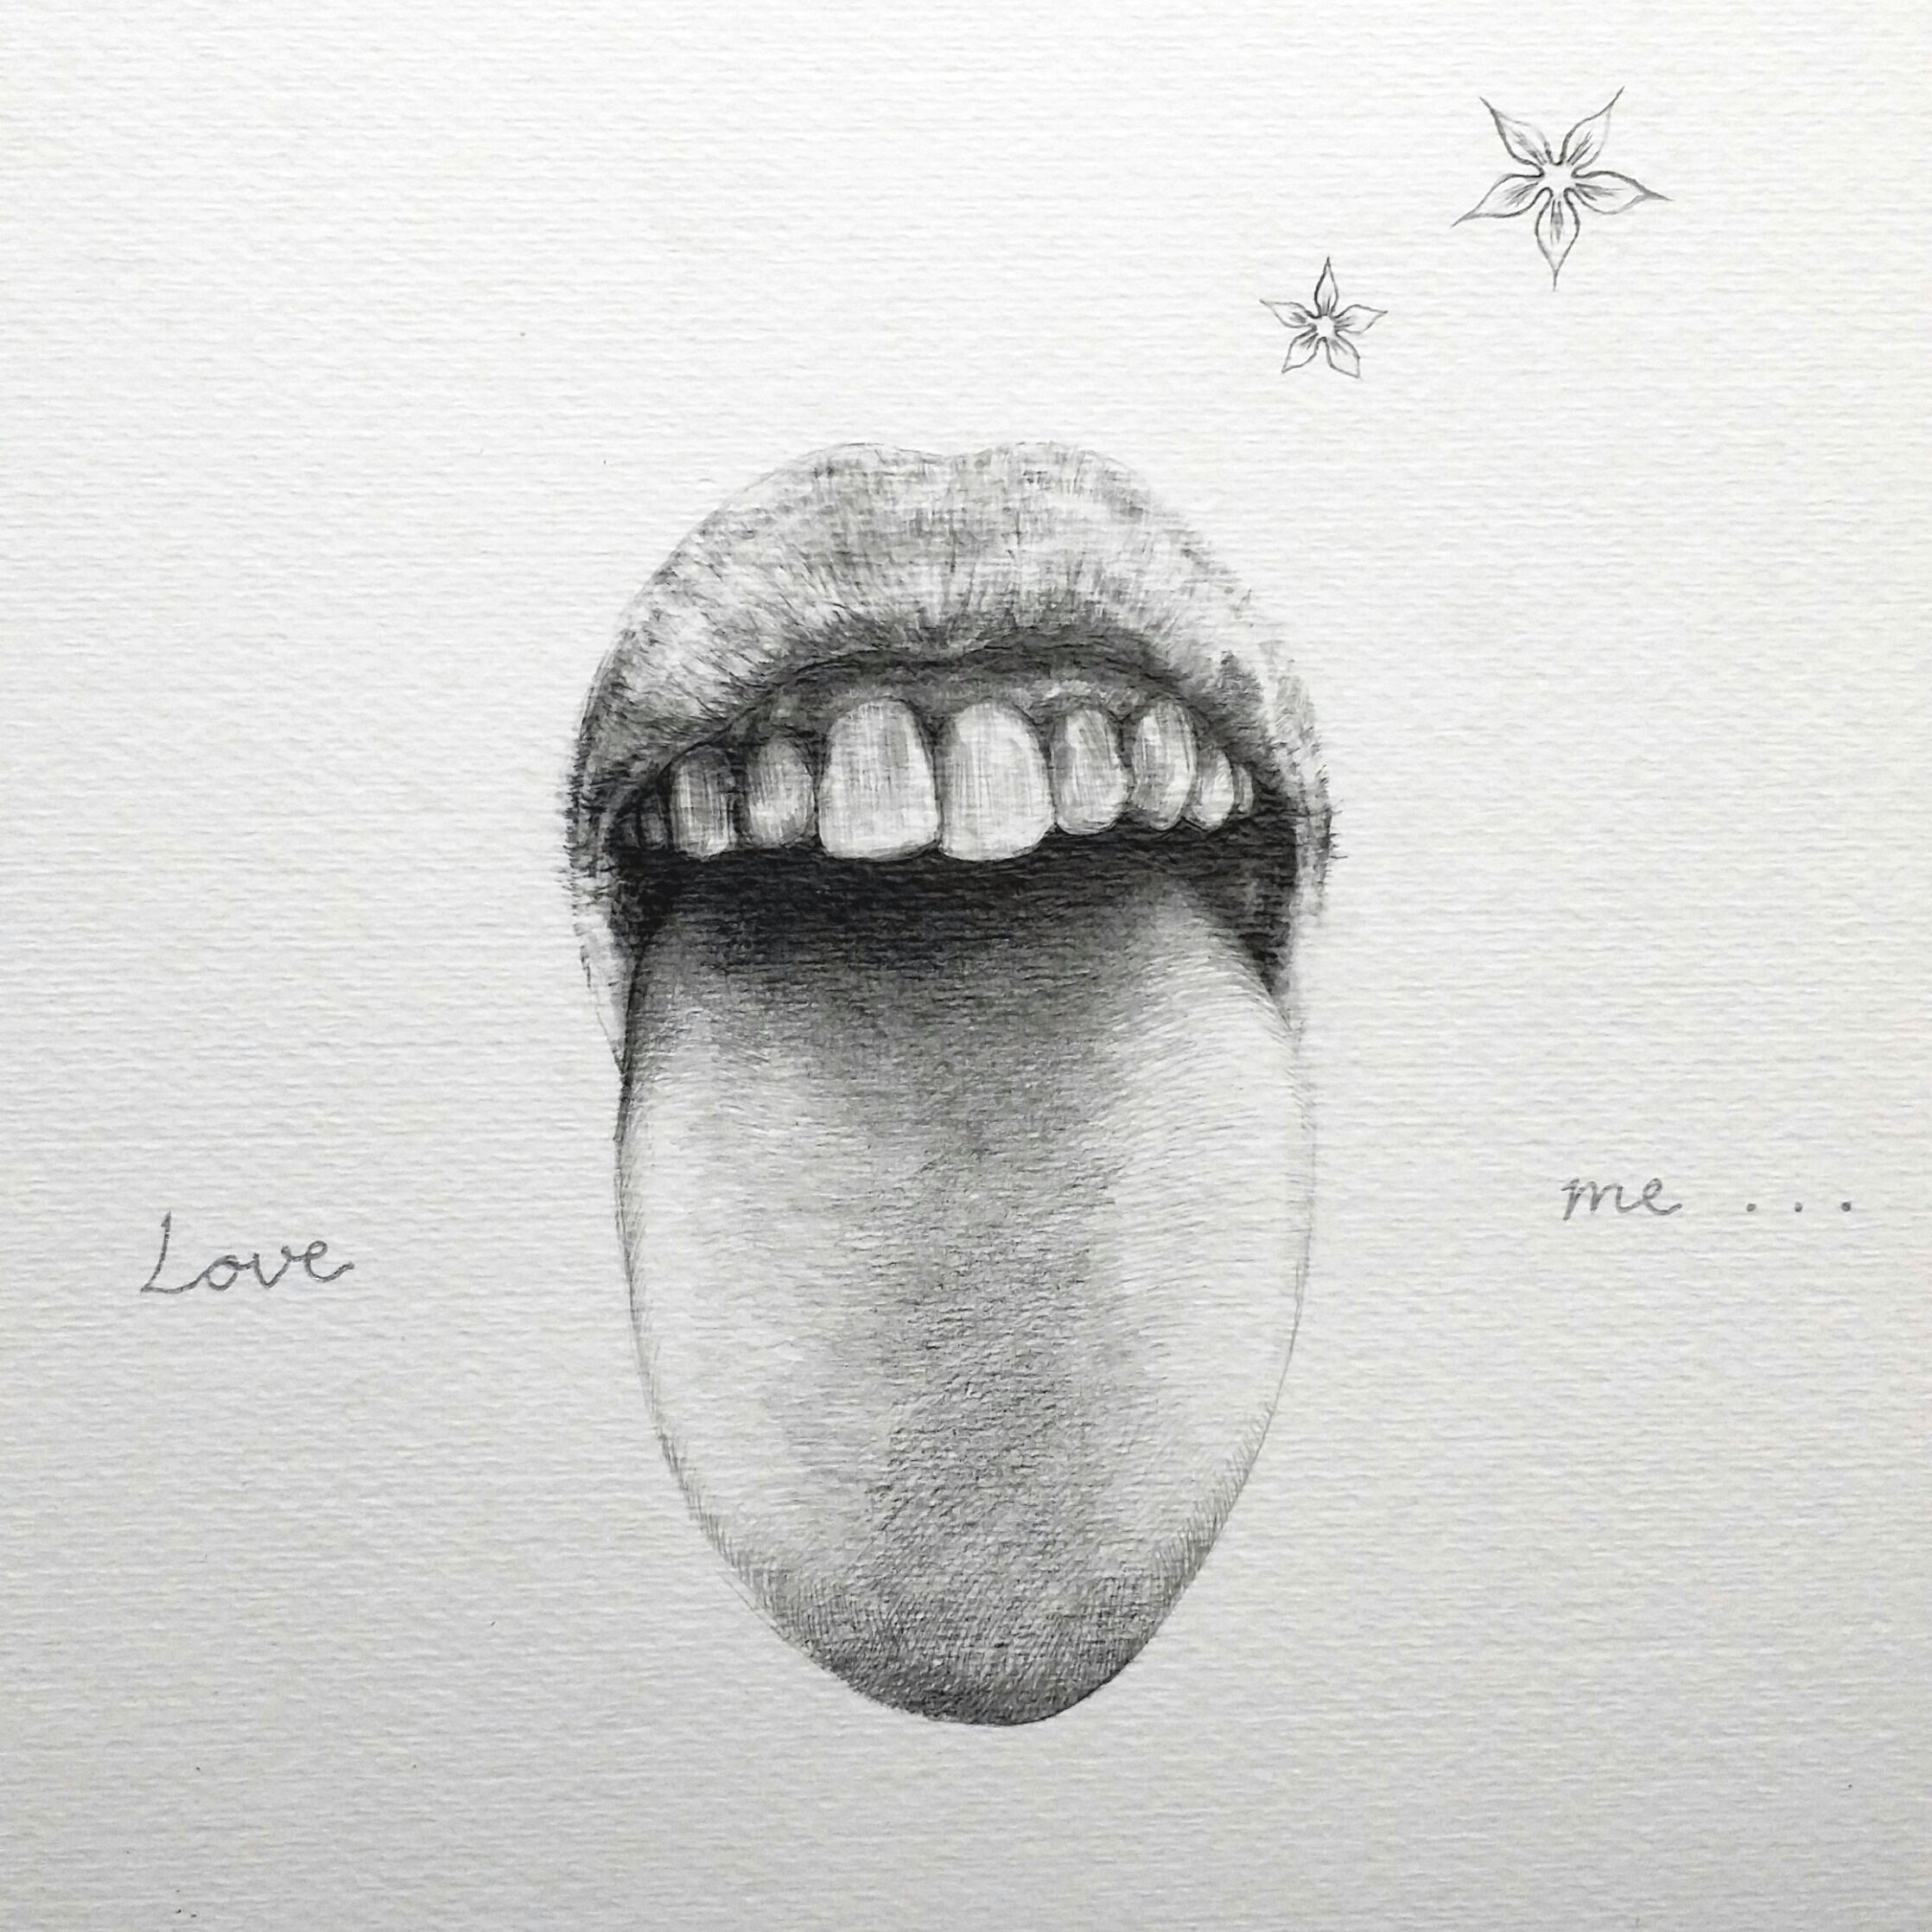 Love Me (drawing)